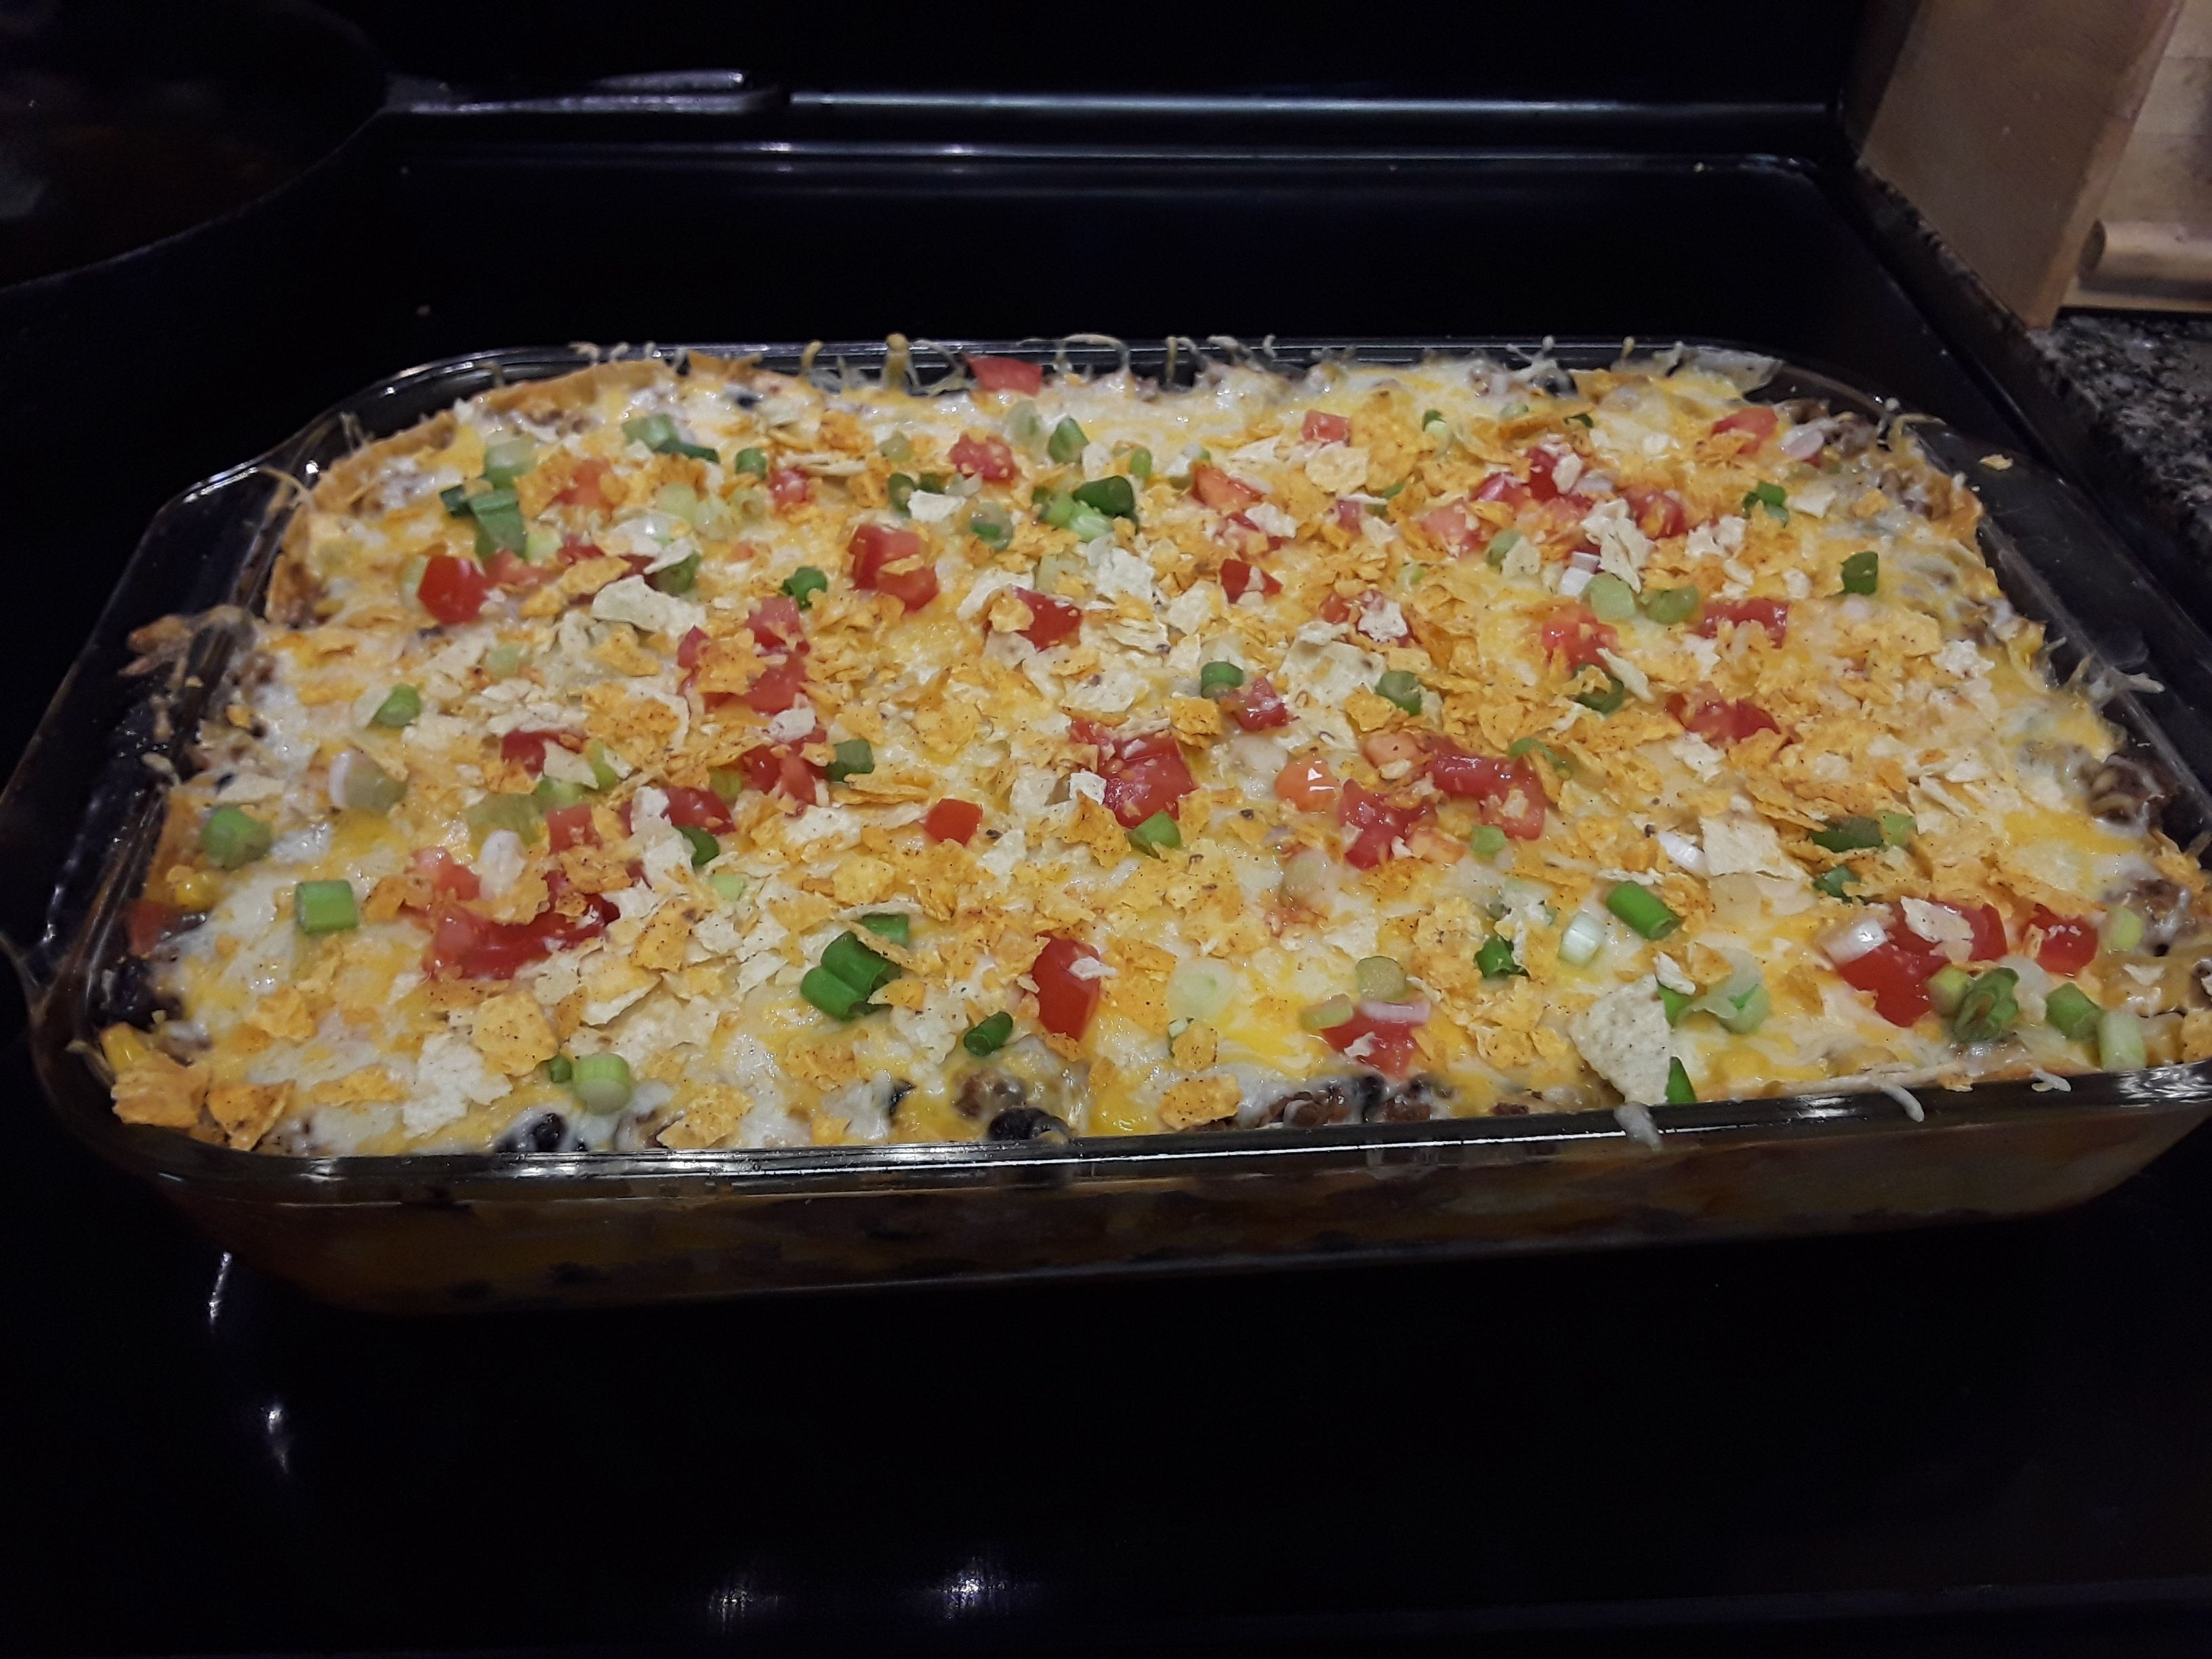 Mexican Ground Beef Tortilla Layer Casserole Recipe Food Com Recipe Recipes Corn Tortilla Recipes Mexican Food Recipes